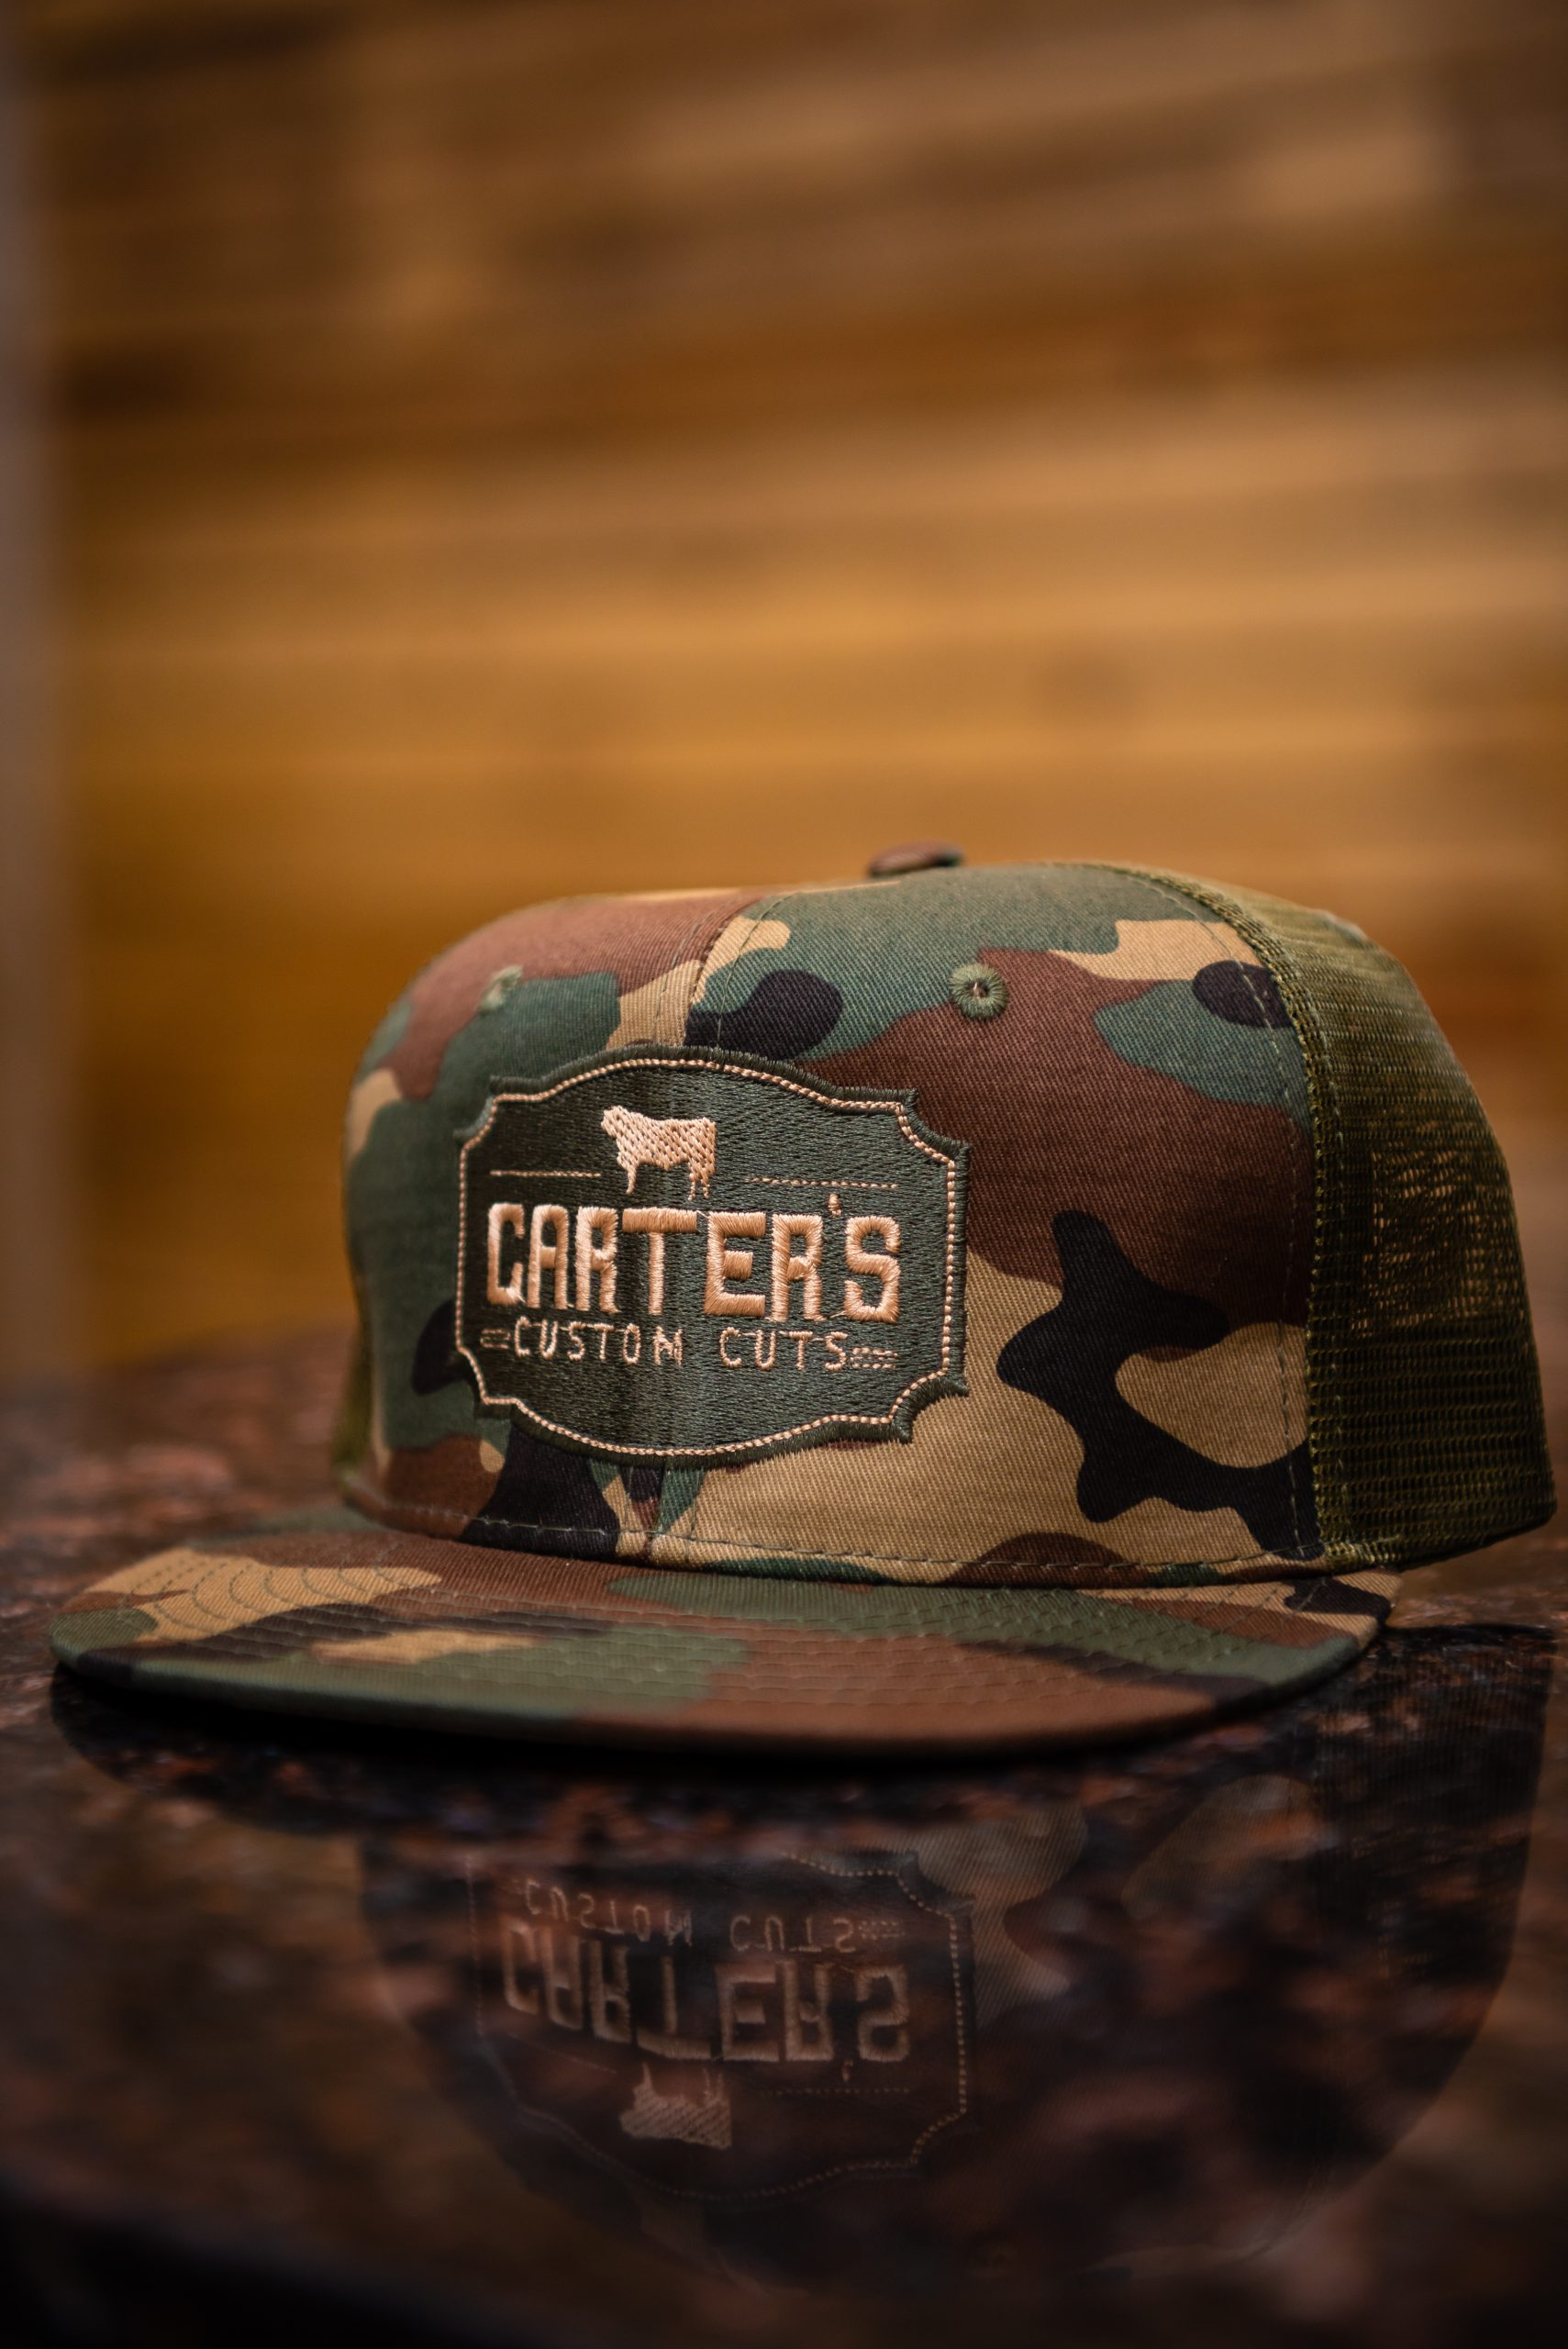 carters-custom-cuts-13_44352765821_o